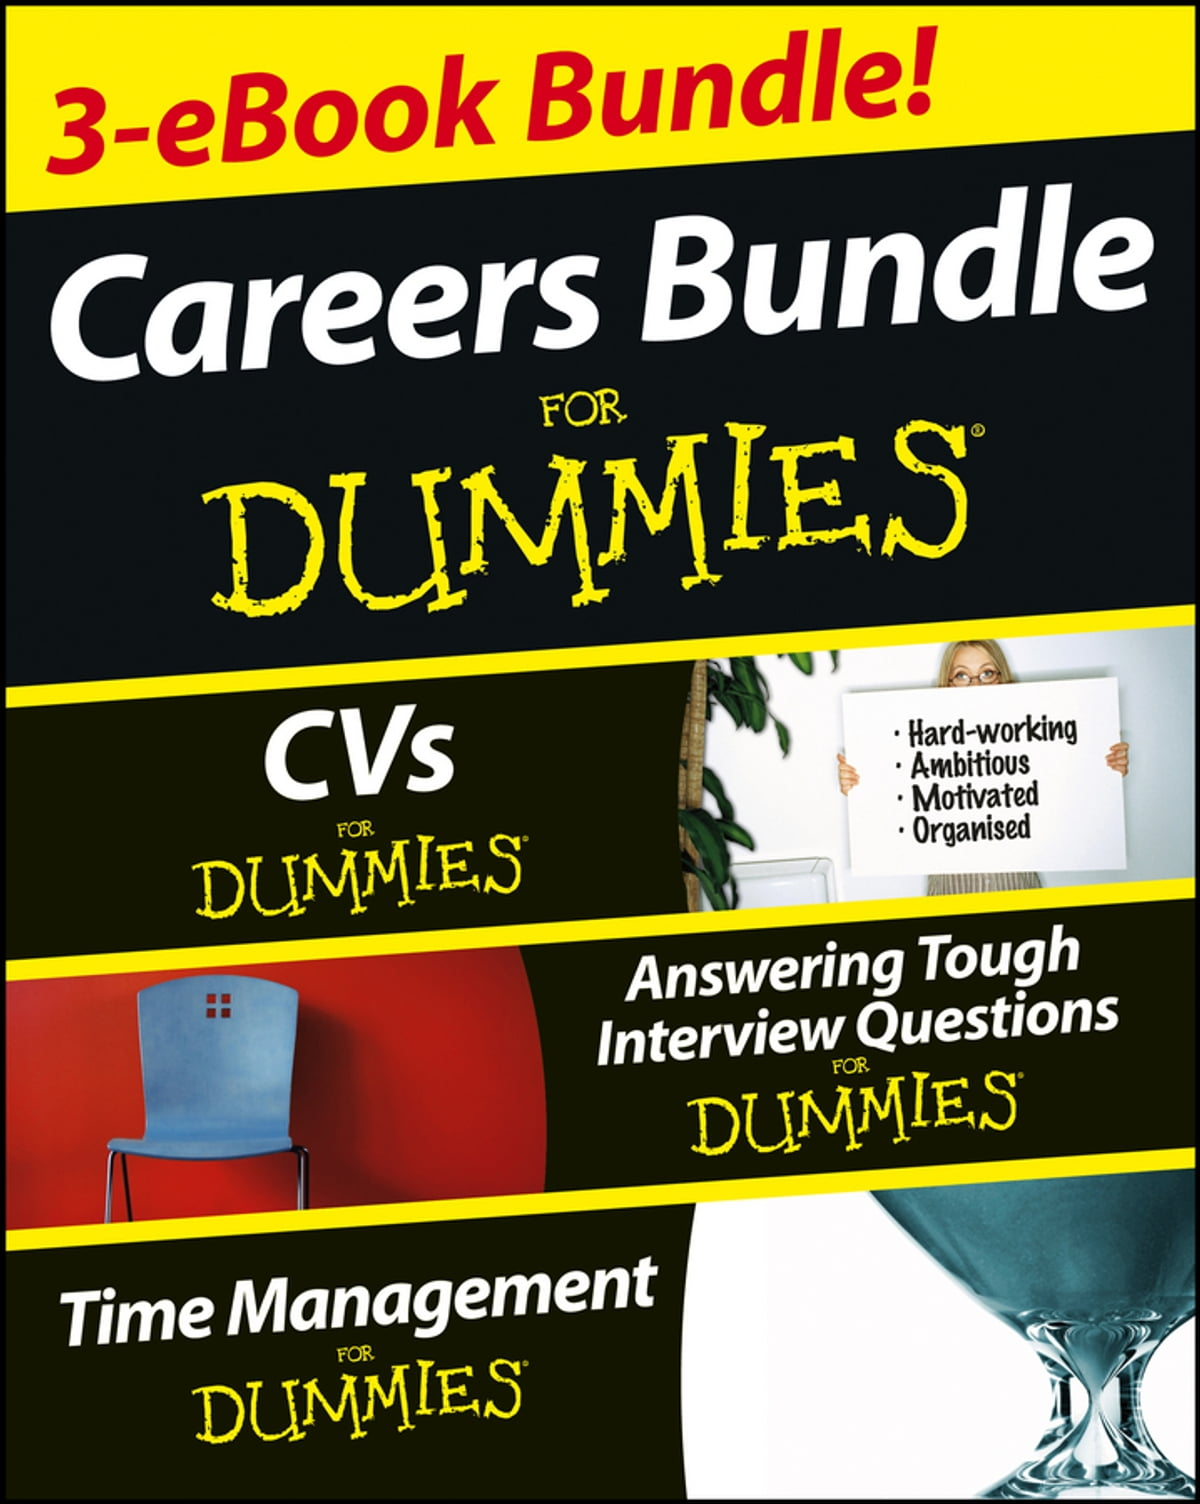 careers for dummies three e book bundle answering tough interview careers for dummies three e book bundle answering tough interview questions for dummies cvs for dummies and time management for dummies ebook by rob yeung